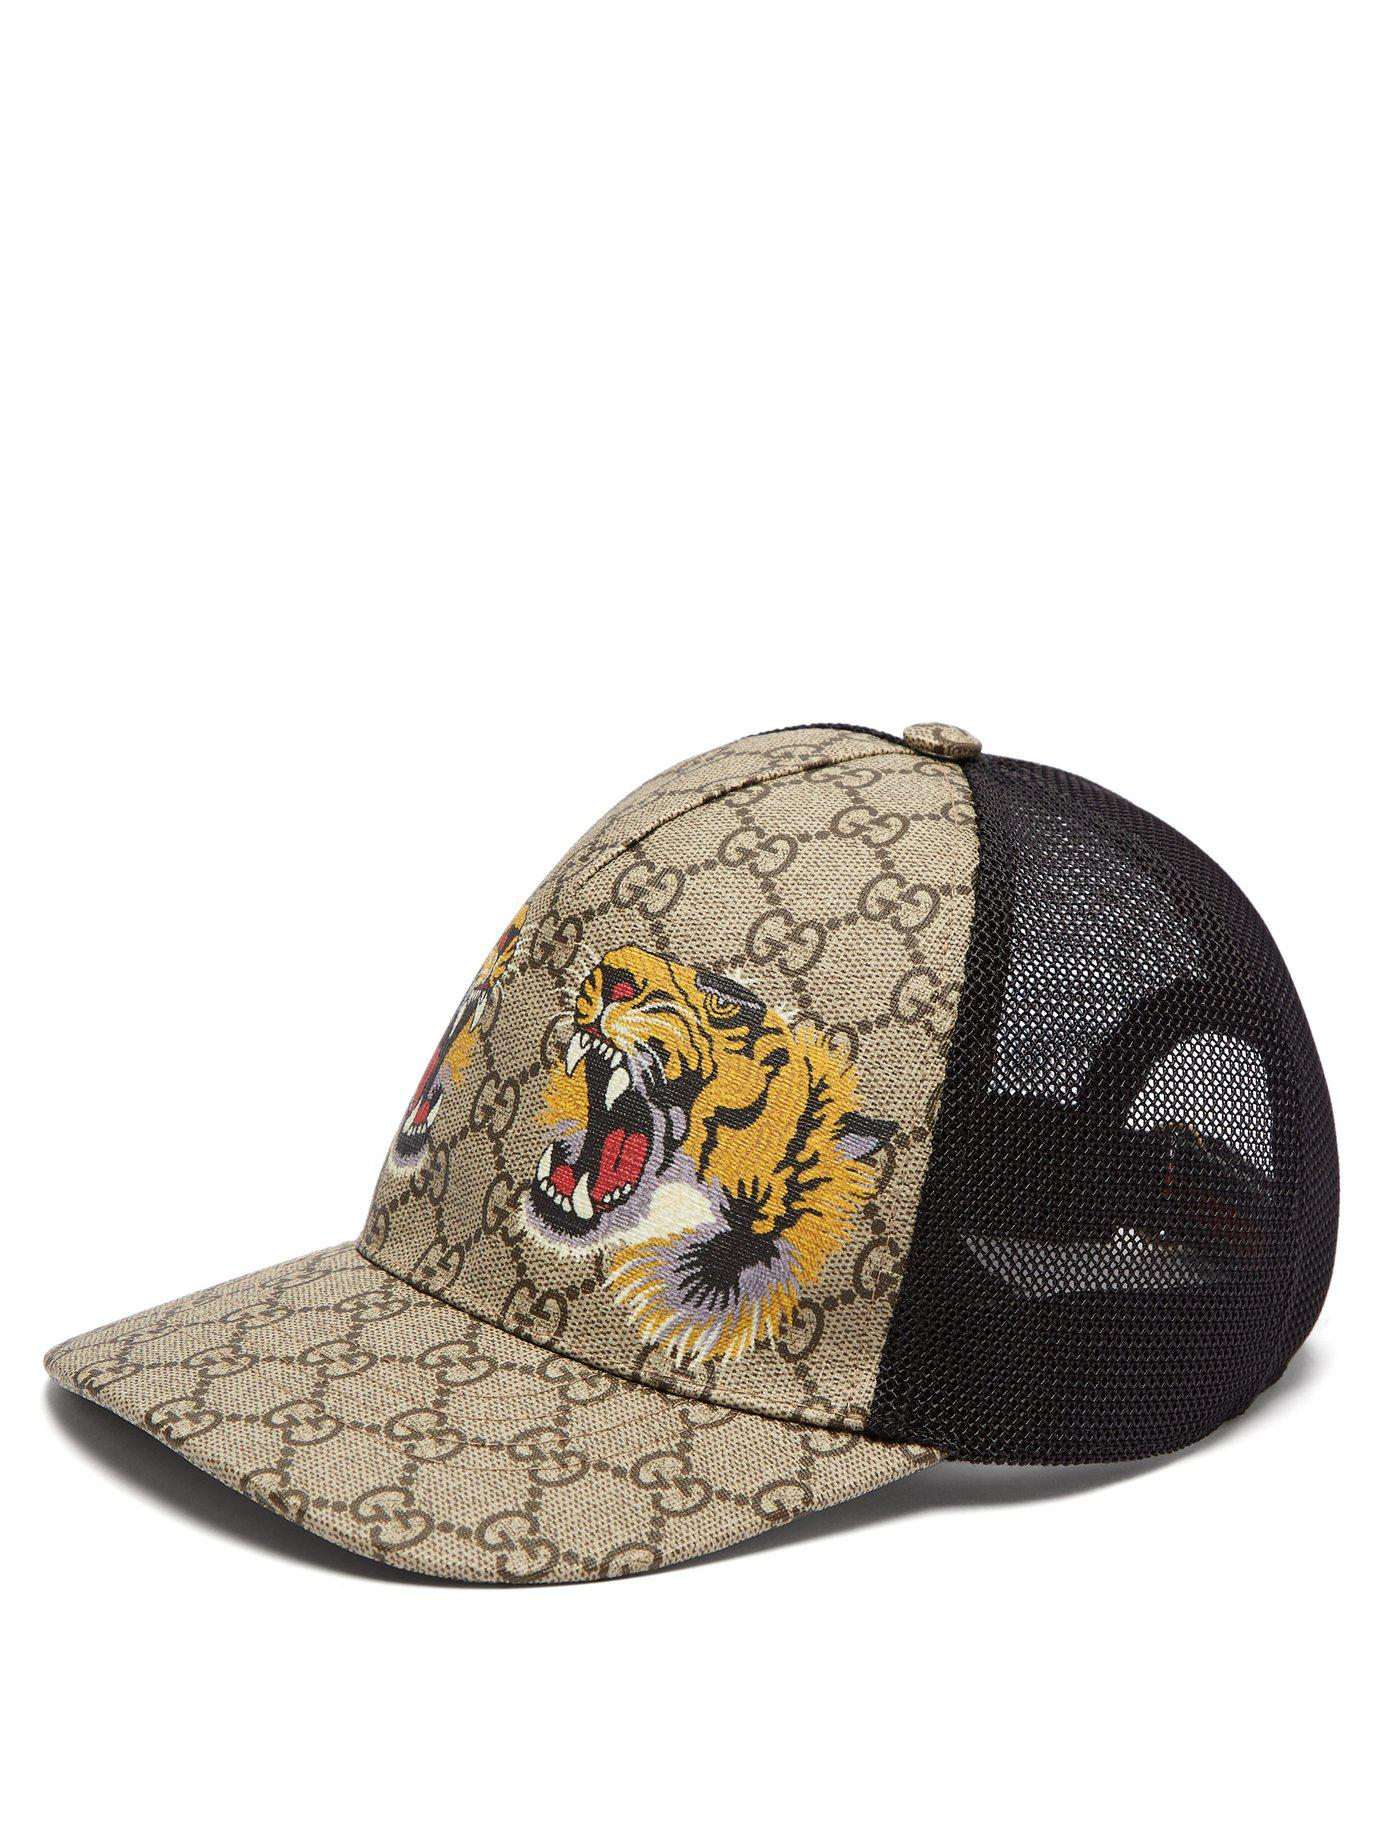 6e85bc2cf8a365 Gucci Gg Supreme And Tiger Print Mesh Cap in Natural for Men - Lyst